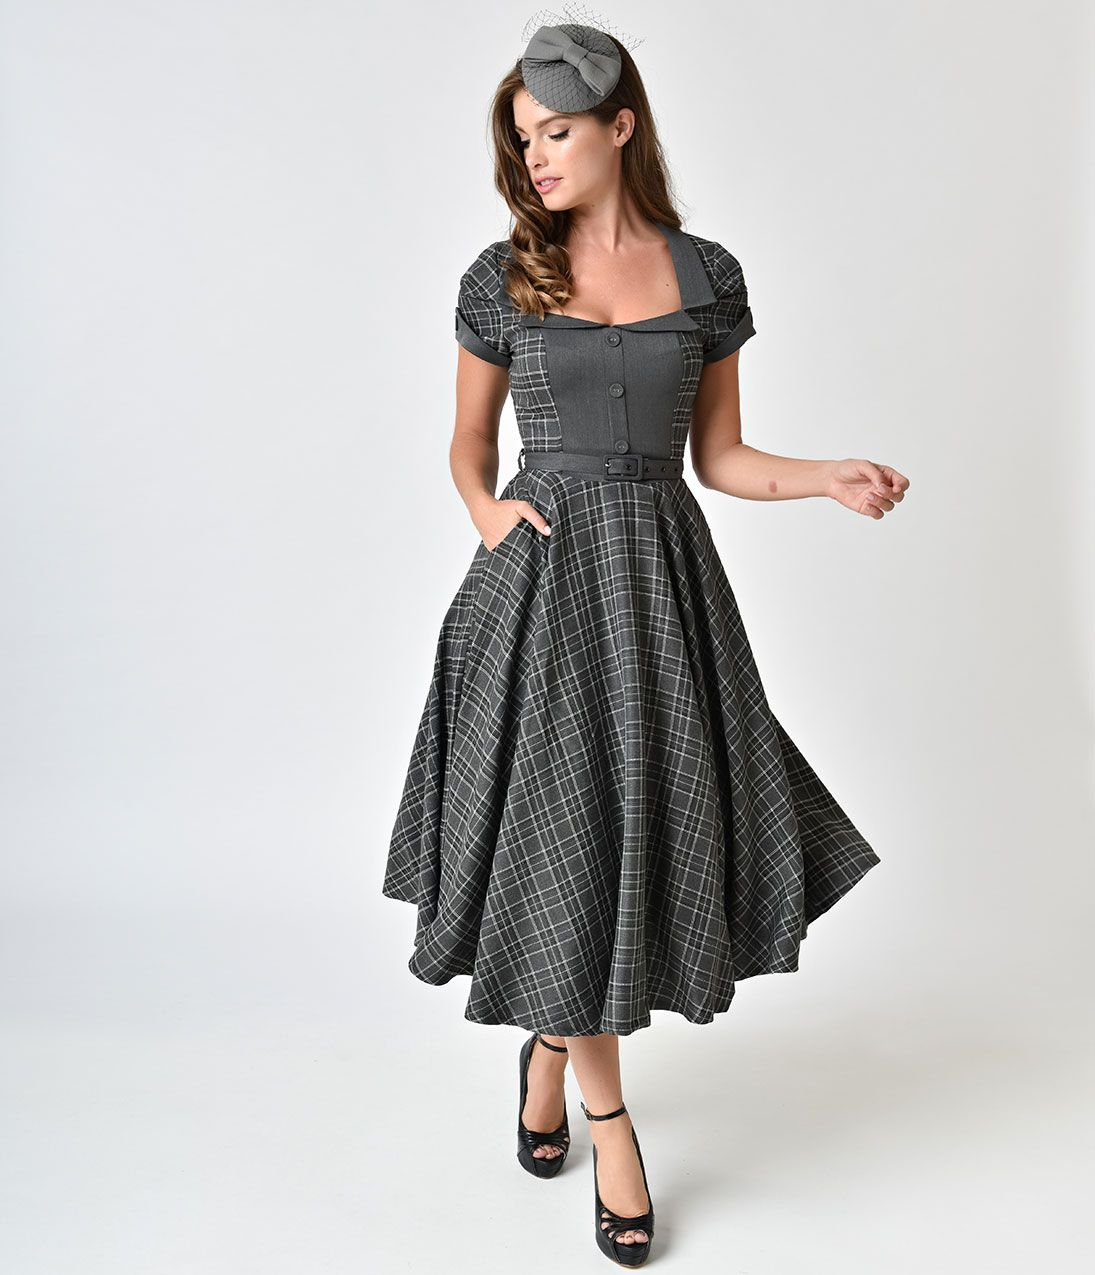 Vintage style dresses s s s and s